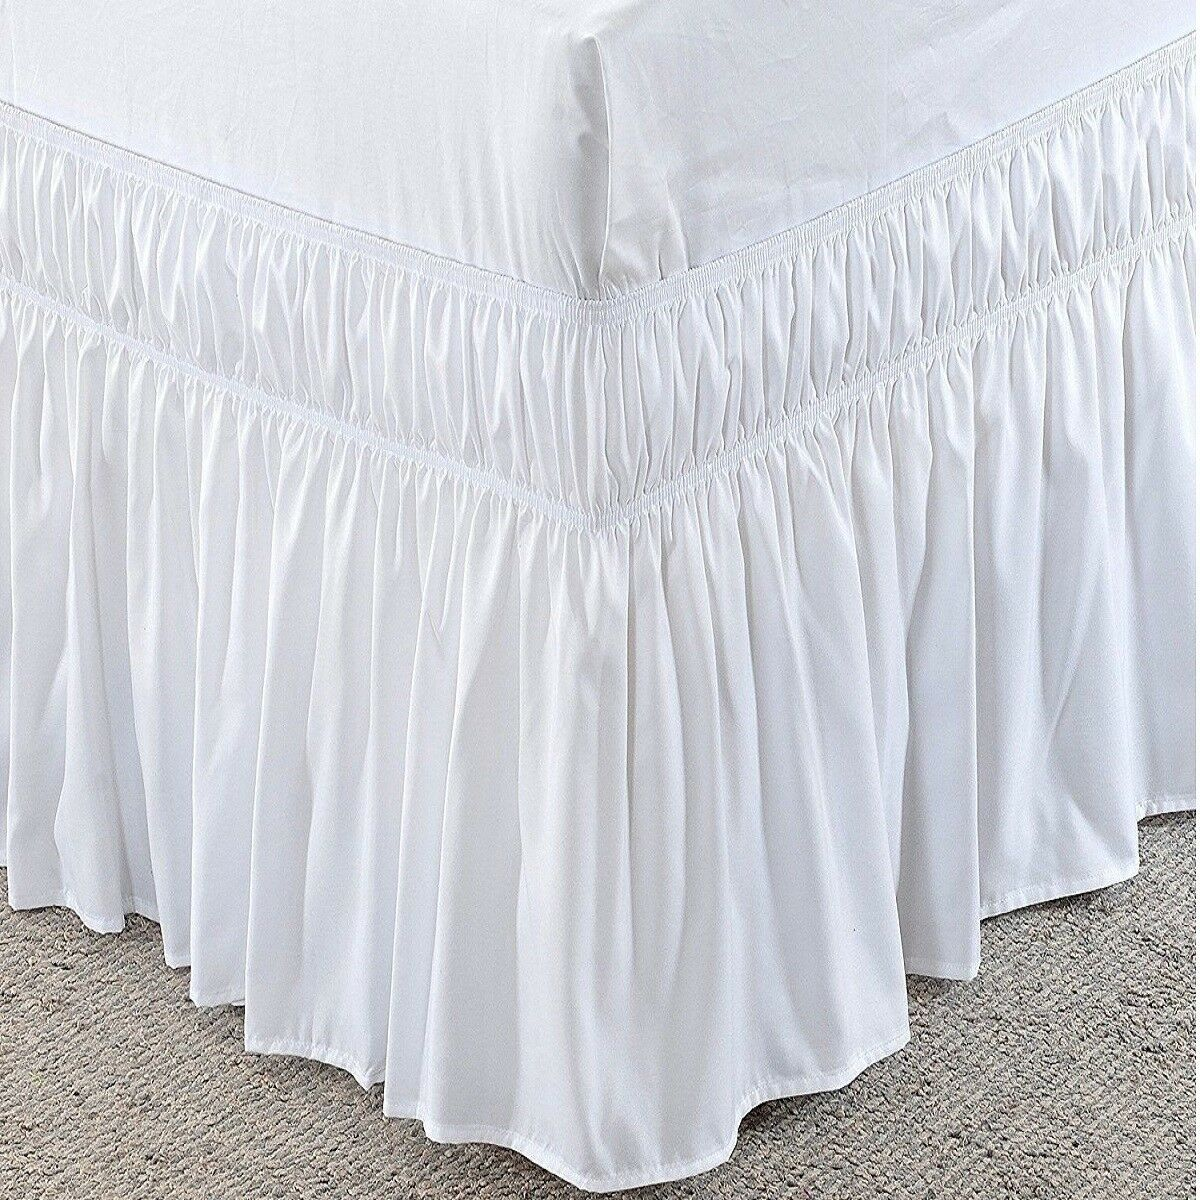 Wrap Around 800 TC Cotton Ruffle Bed Skirt Solid White All Size Drop Length New